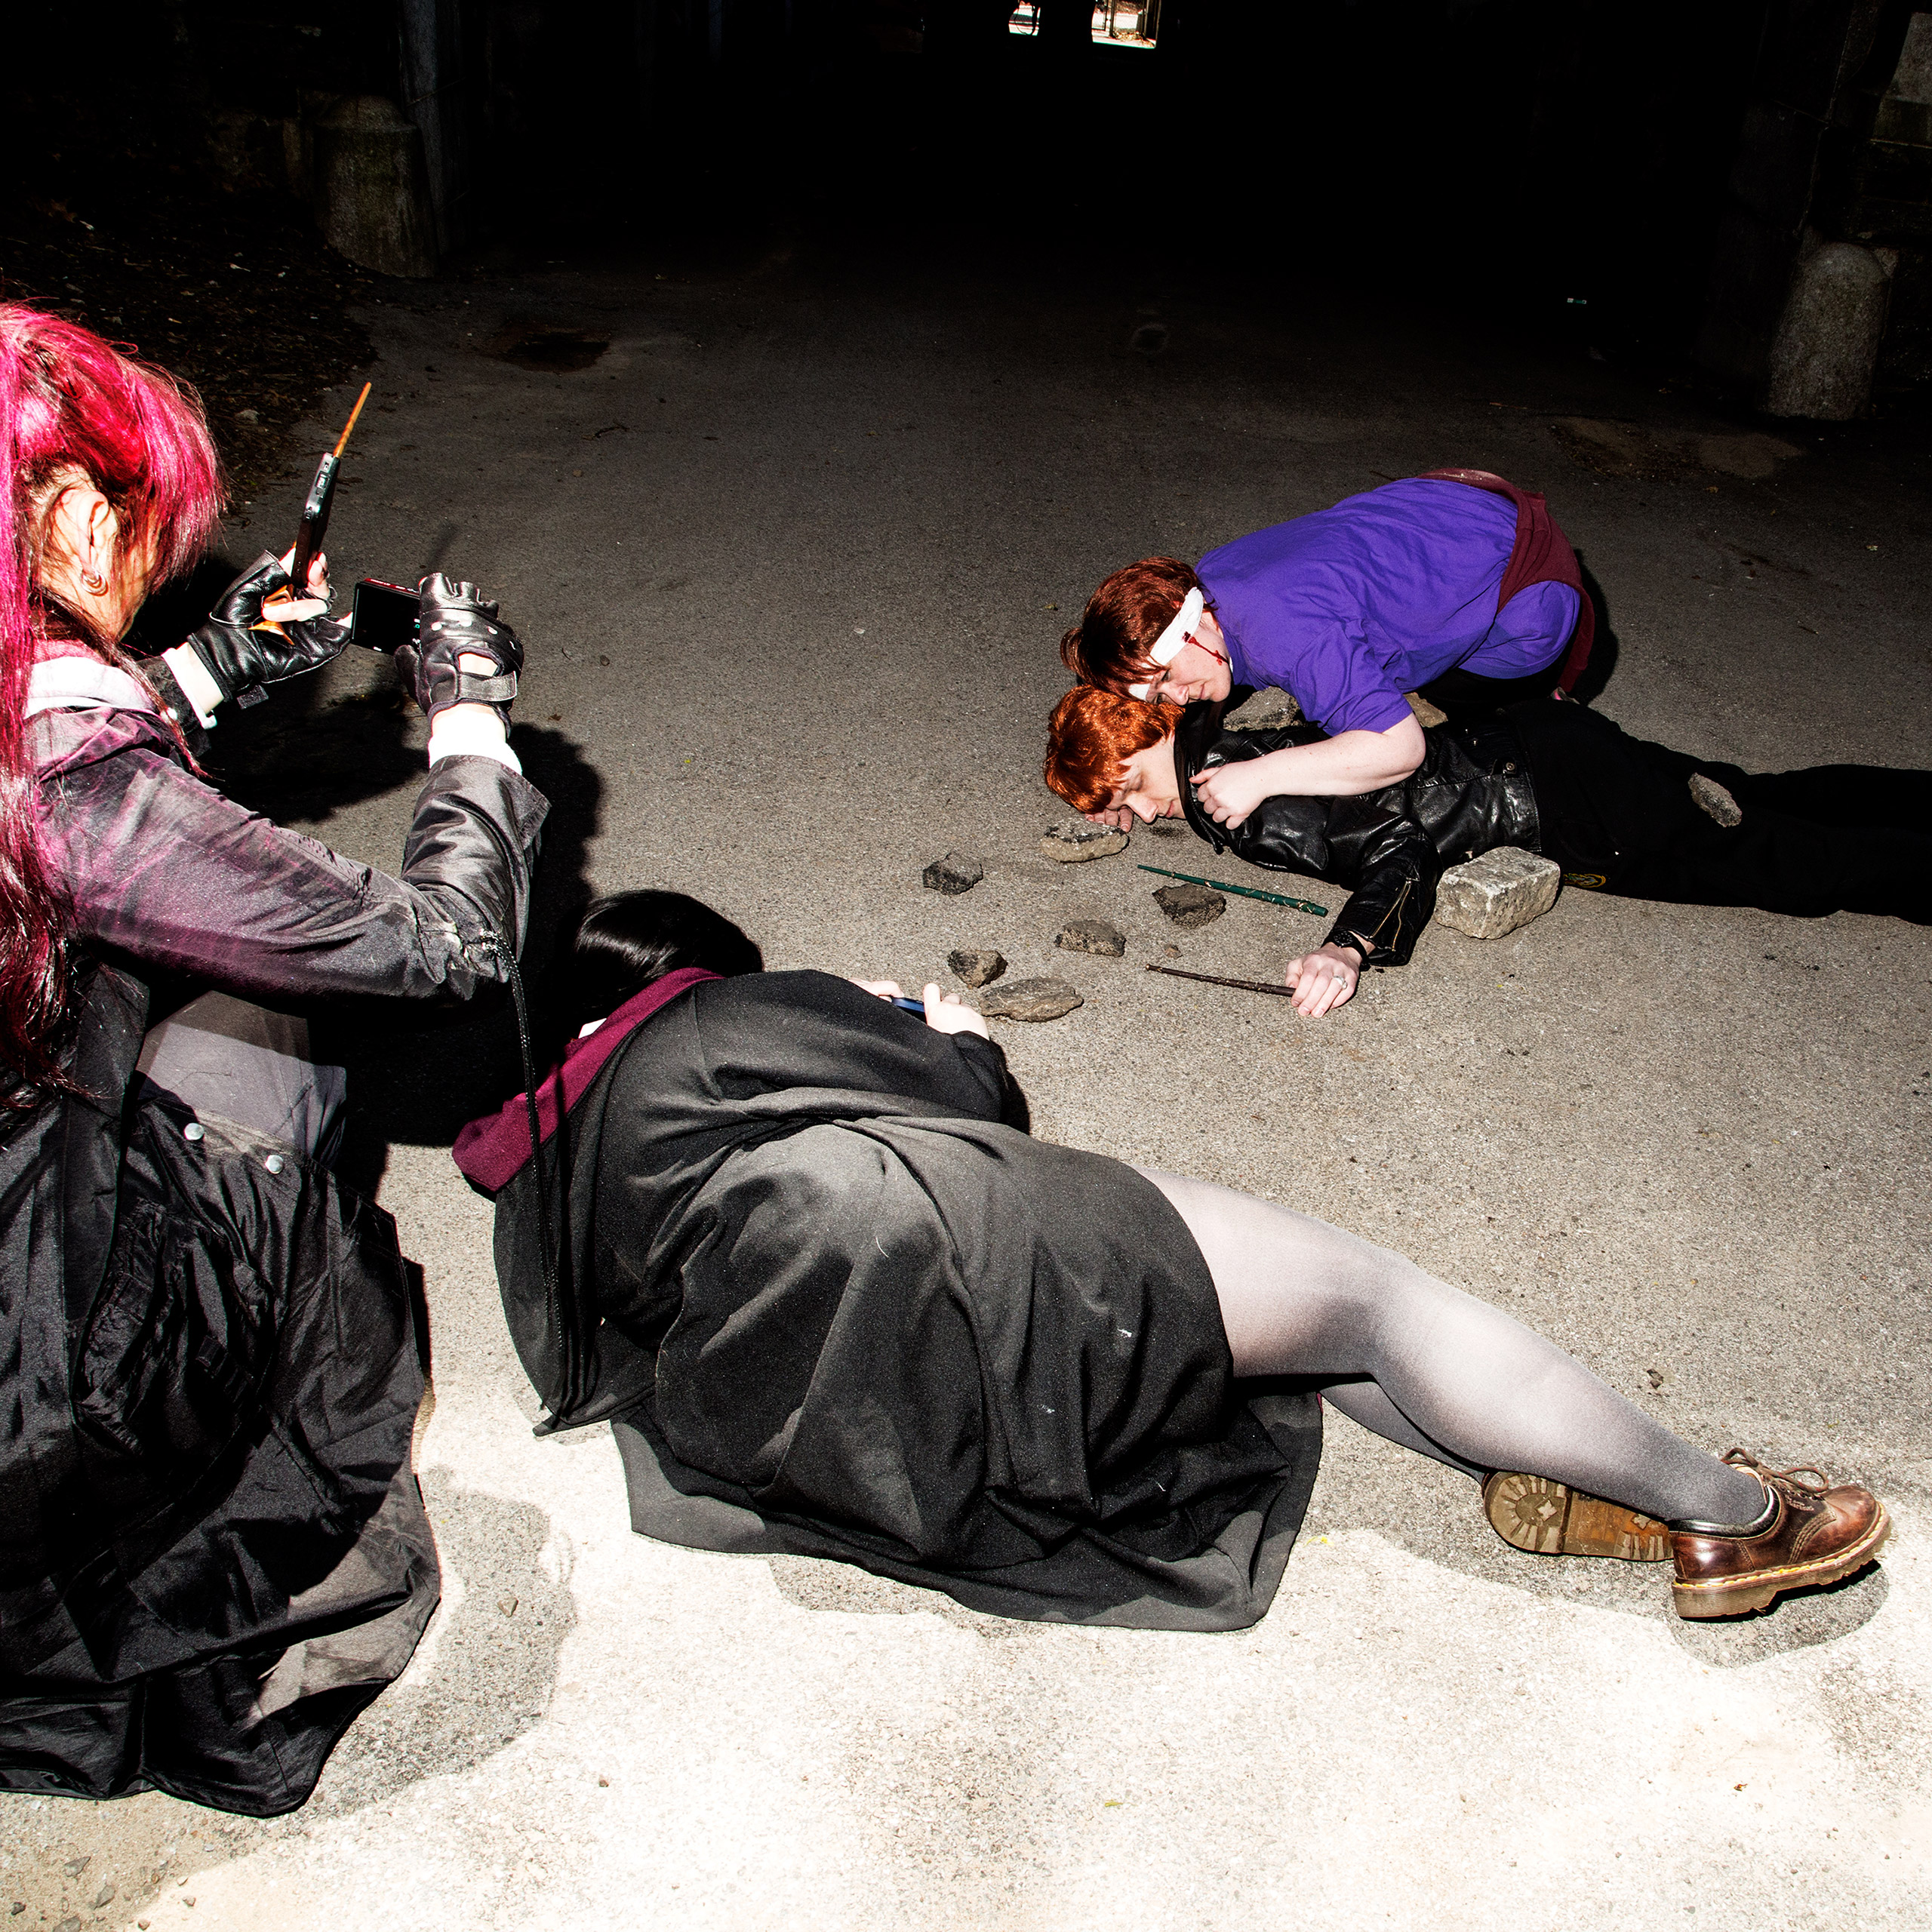 Members cosplay as the Weasley's at a gathering at Fort Tyron Park in Inwood.